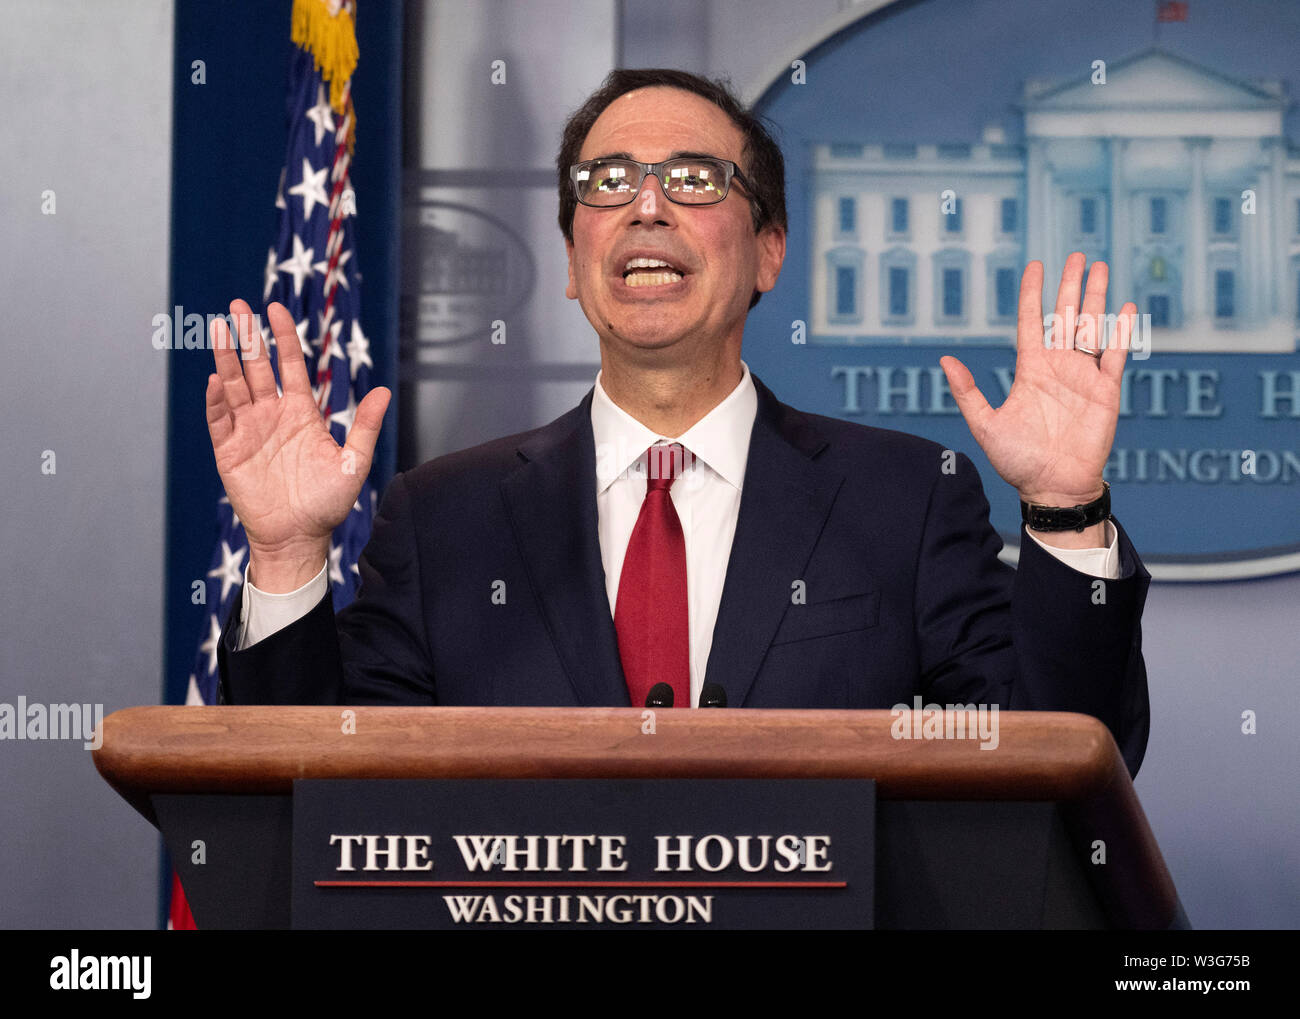 Washington, United States Of America. 15th July, 2019. United States Secretary of the Treasury Steven T. Mnuchin gestures as he holds a press briefing in the Brady Press Briefing Room of the White House in Washington, DC on Monday, July 15, 2019. Sec. Mnuchin was discussing digital assets, including cryptocurrency, such as Bitcoin or Libra.Credit: Ron Sachs/CNP | usage worldwide Credit: dpa/Alamy Live News - Stock Image